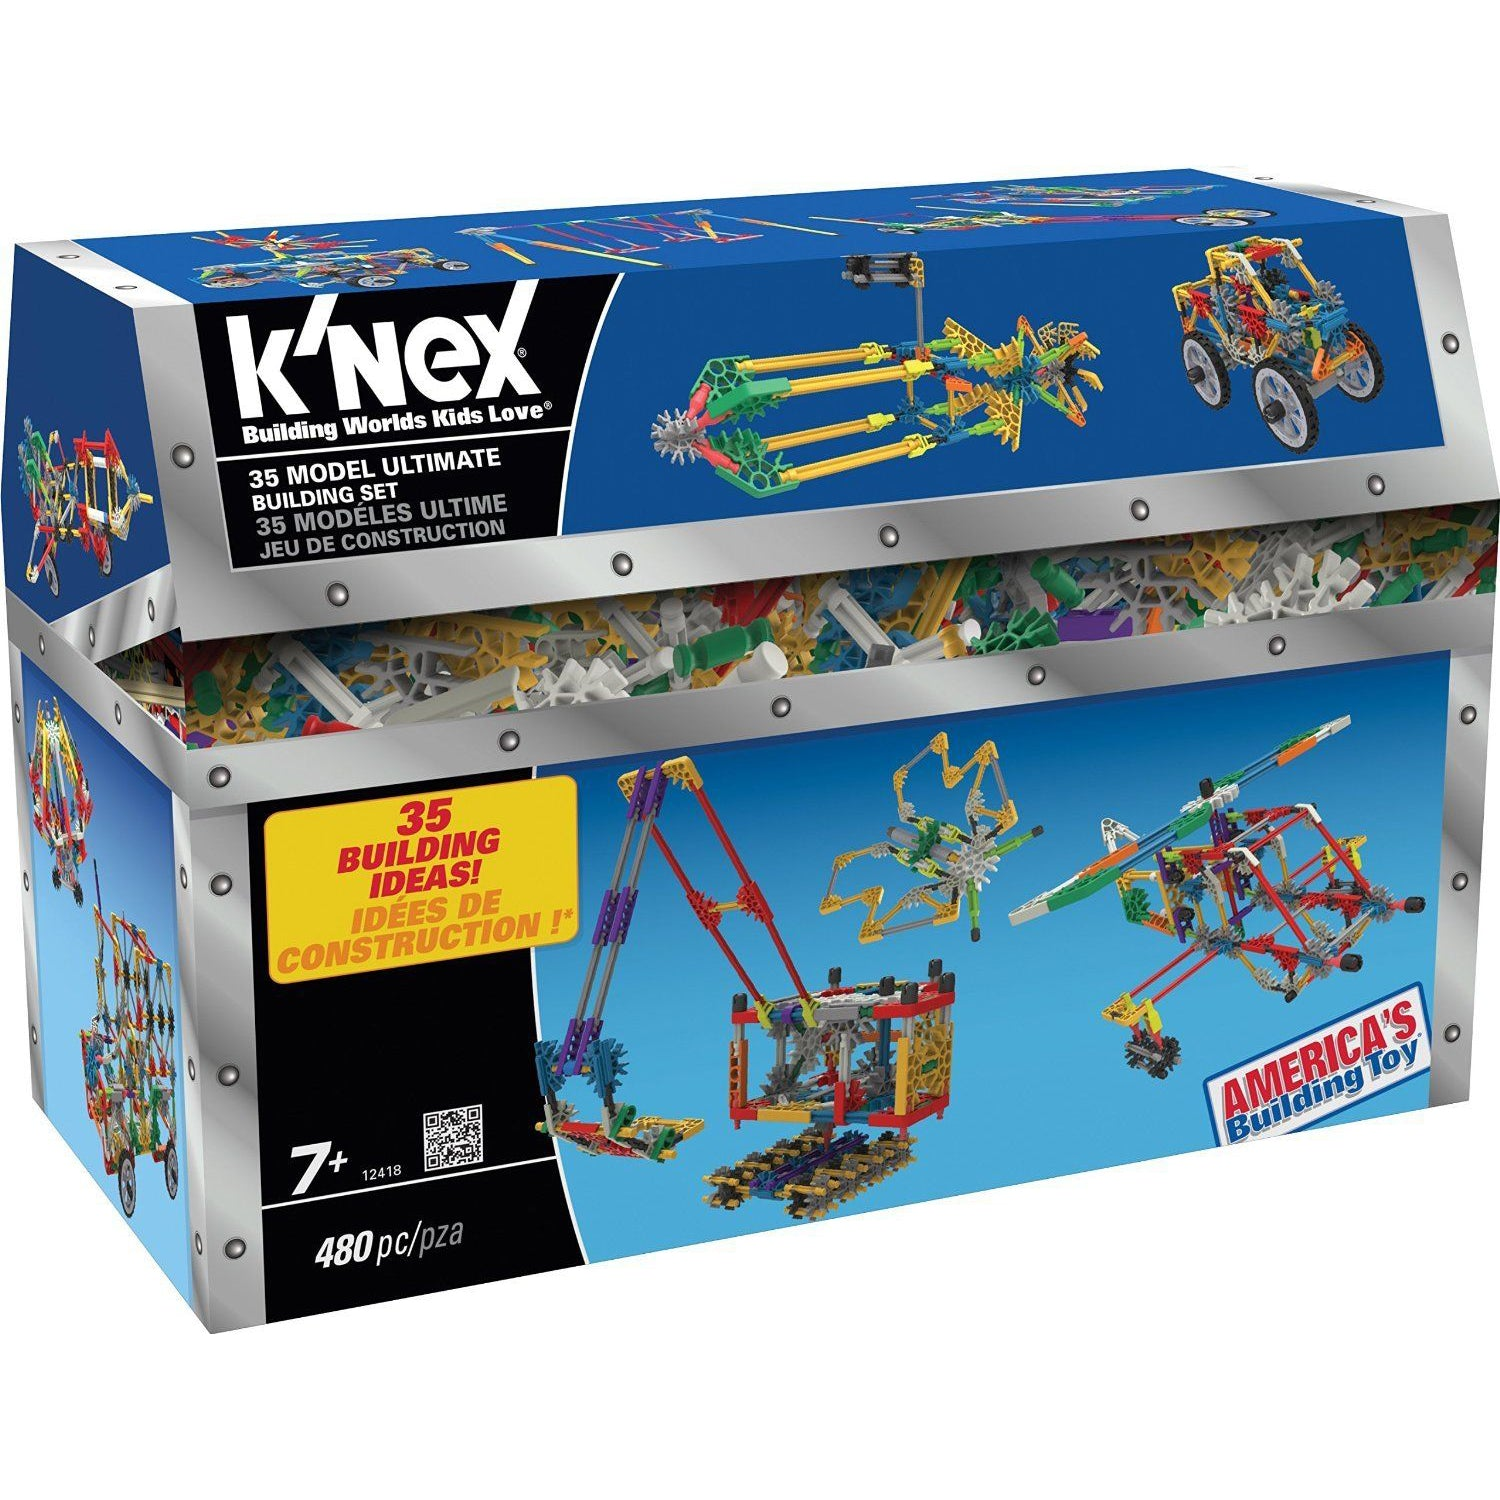 K'nex 35 Model Ultimate Building Set, boxed, slightly open